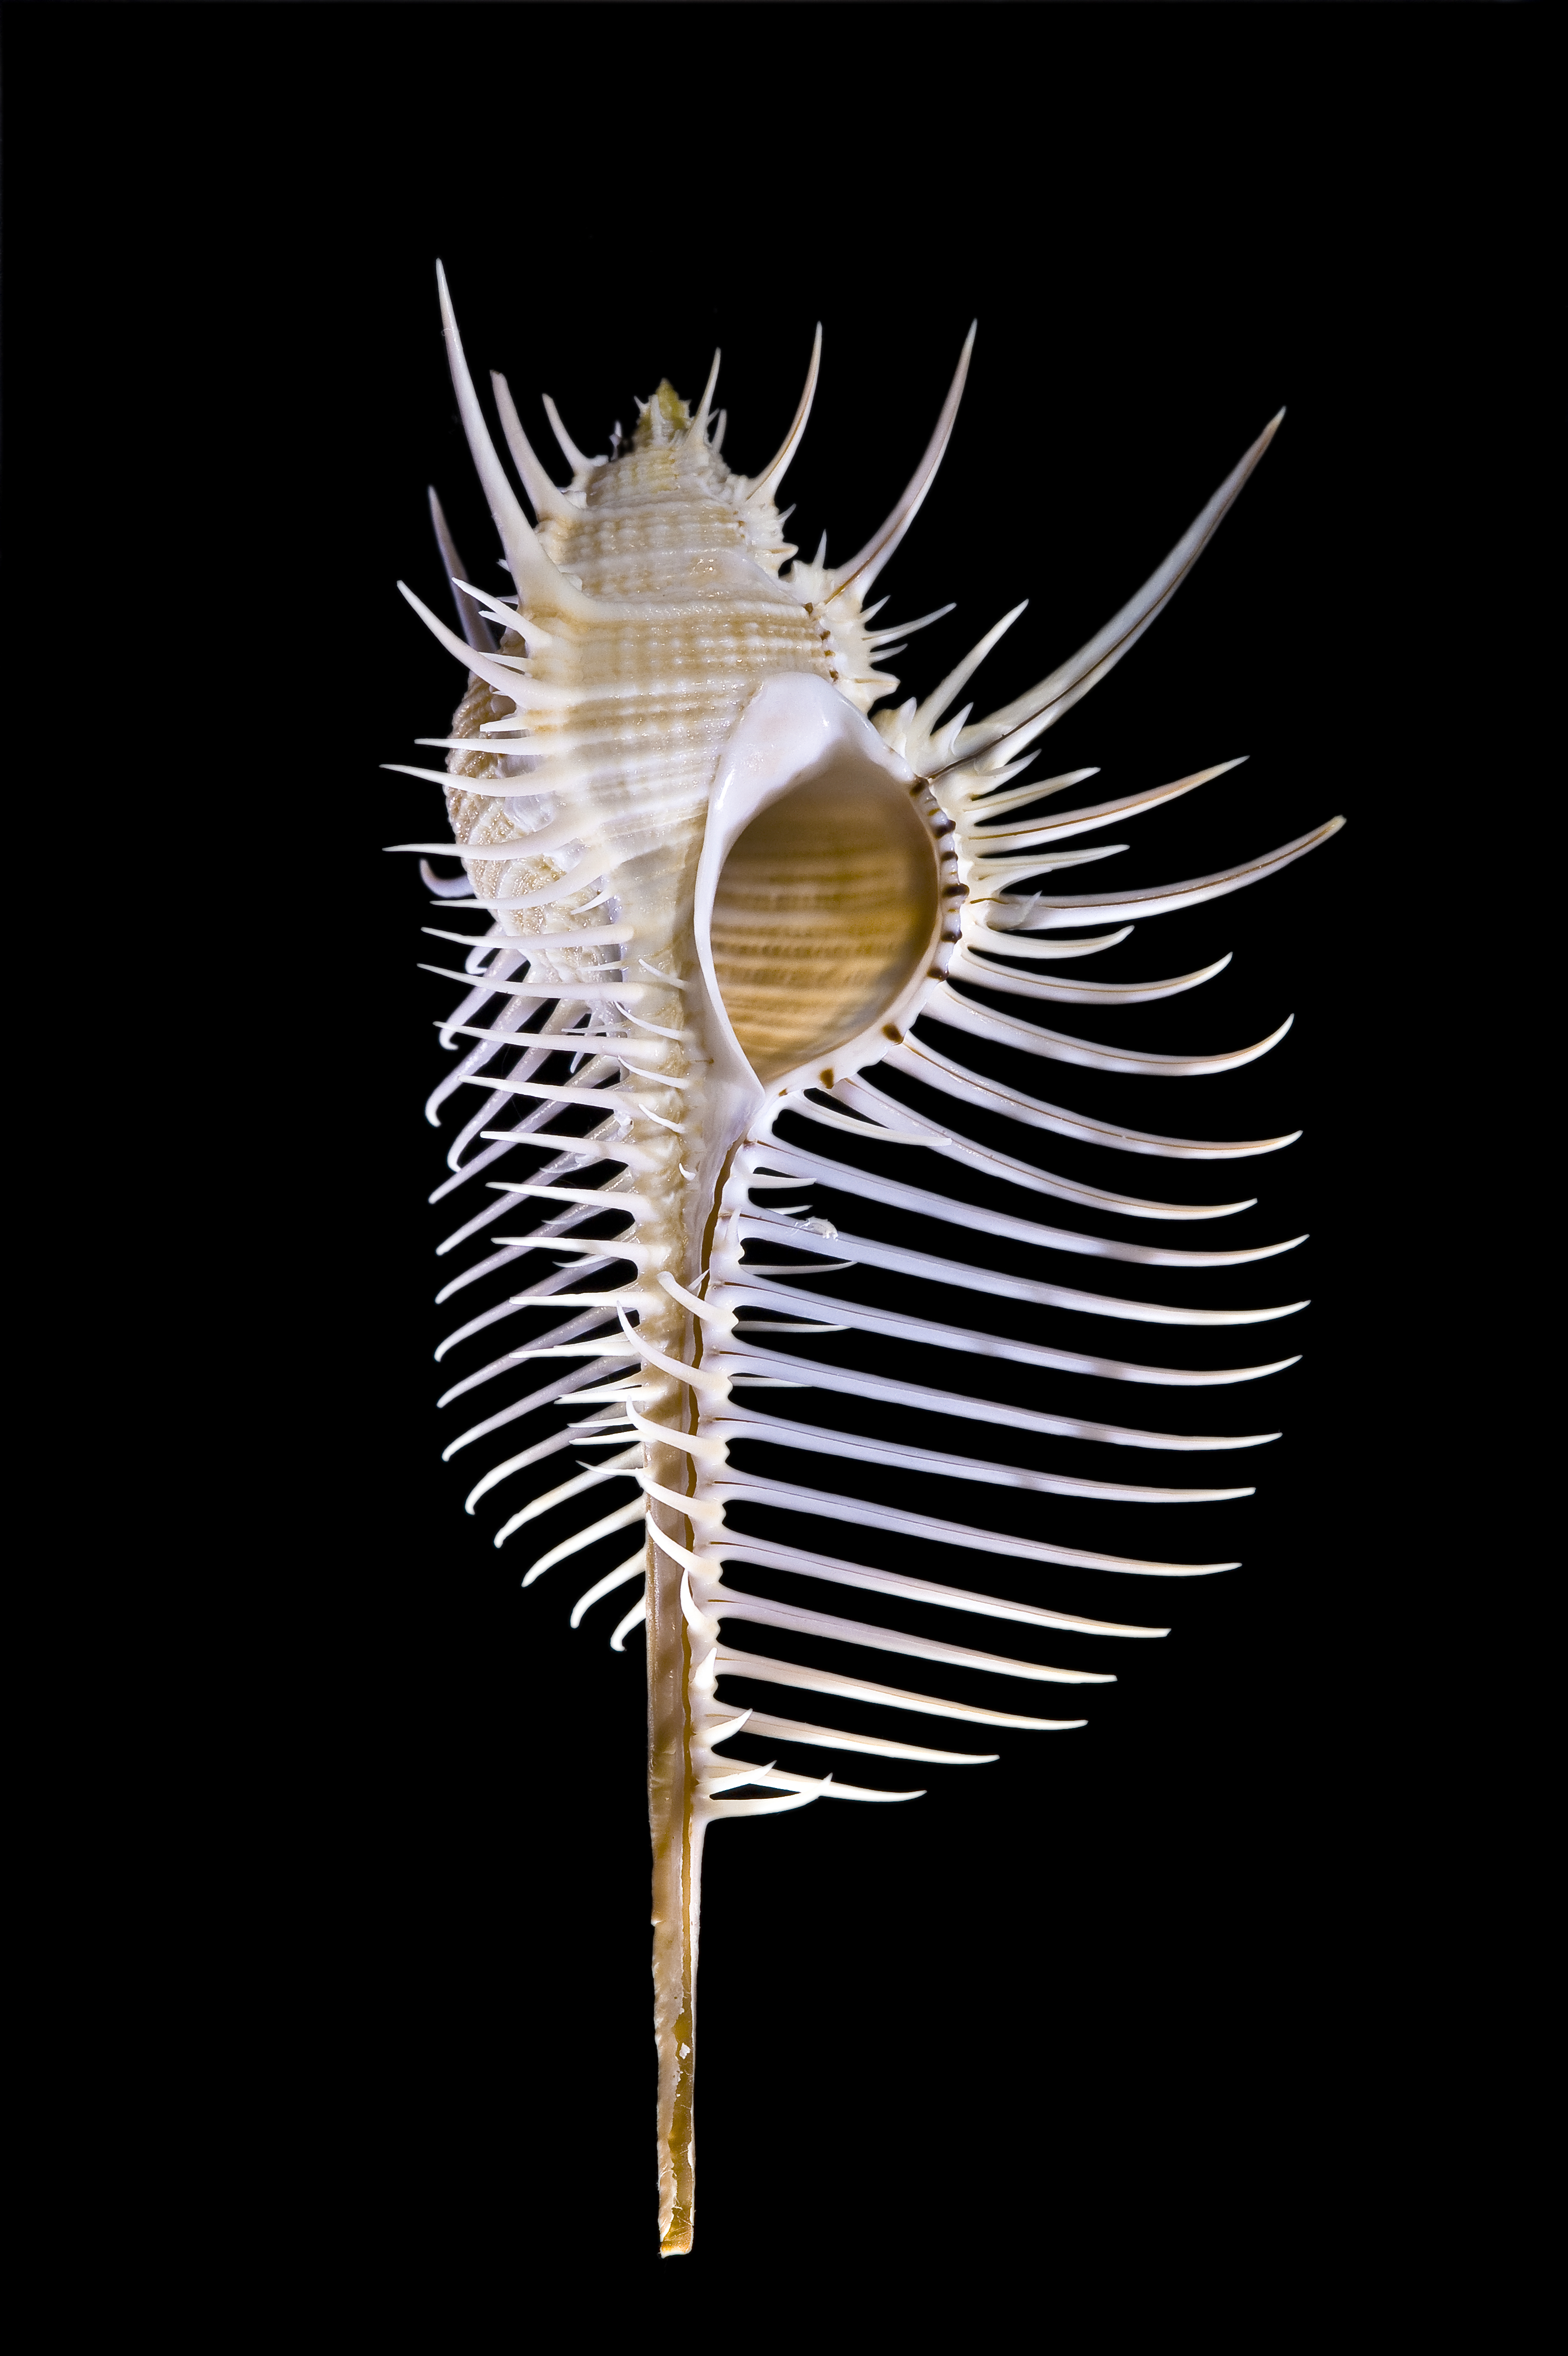 Commons:Featured pictures/Animals/Bones, shells and fossils.